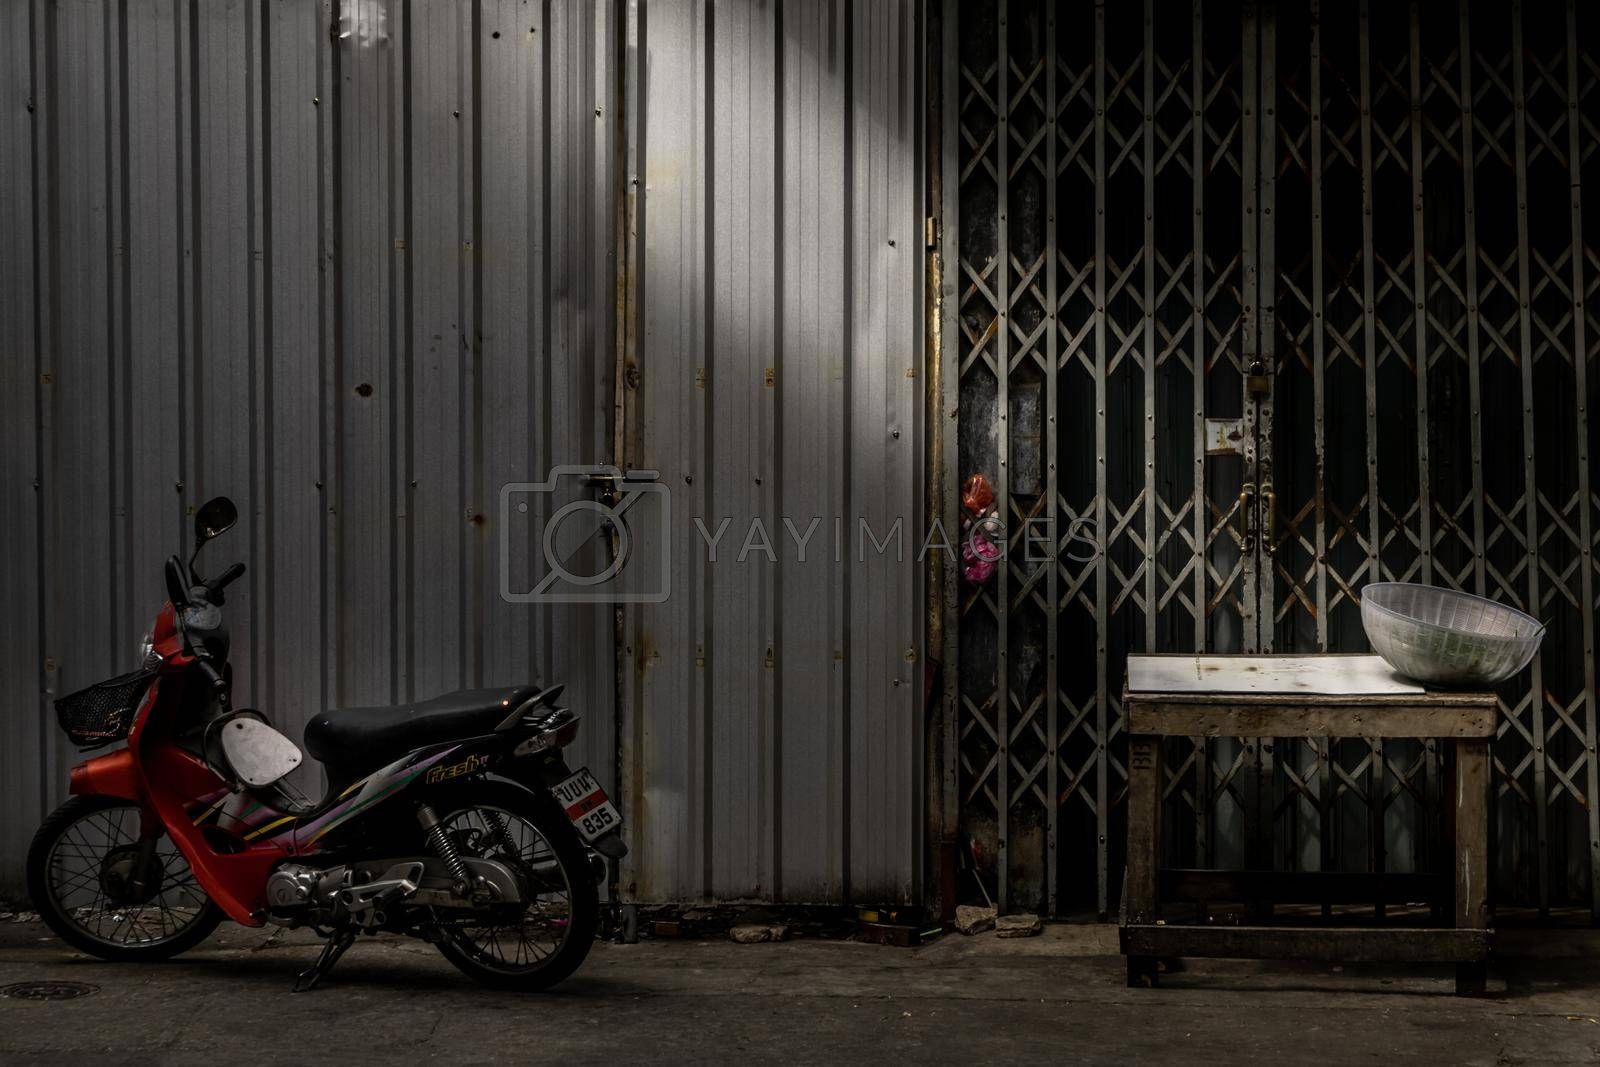 Bangkok, Thailand - Dec 7, 2019 : Motorcycle parked and old wooden table in front of ancient iron gate and Folding iron gates with locked.